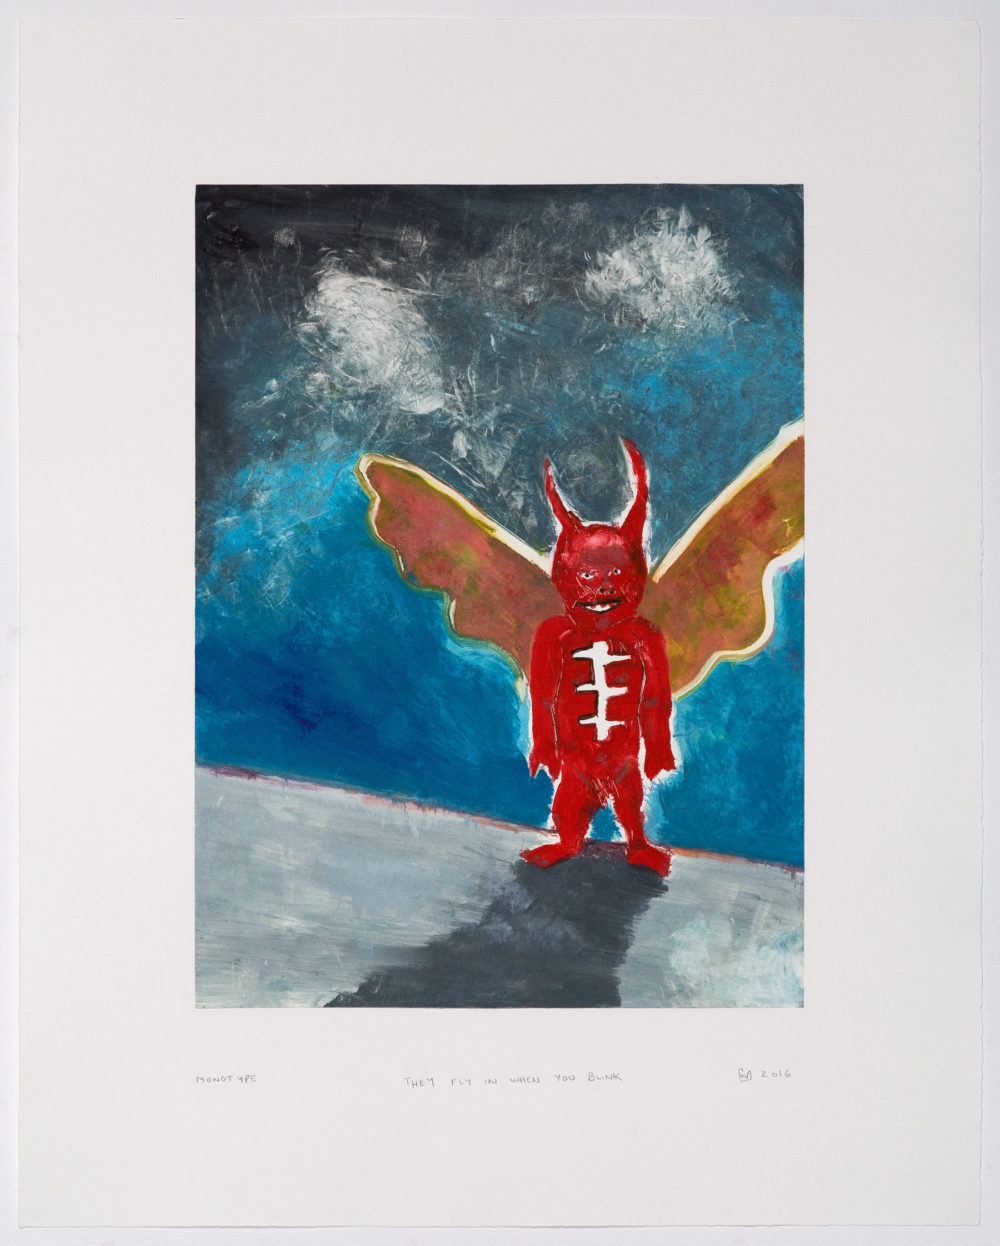 Wilhelm Saayman, Monotypes, Prints, They Fly In When You Blink